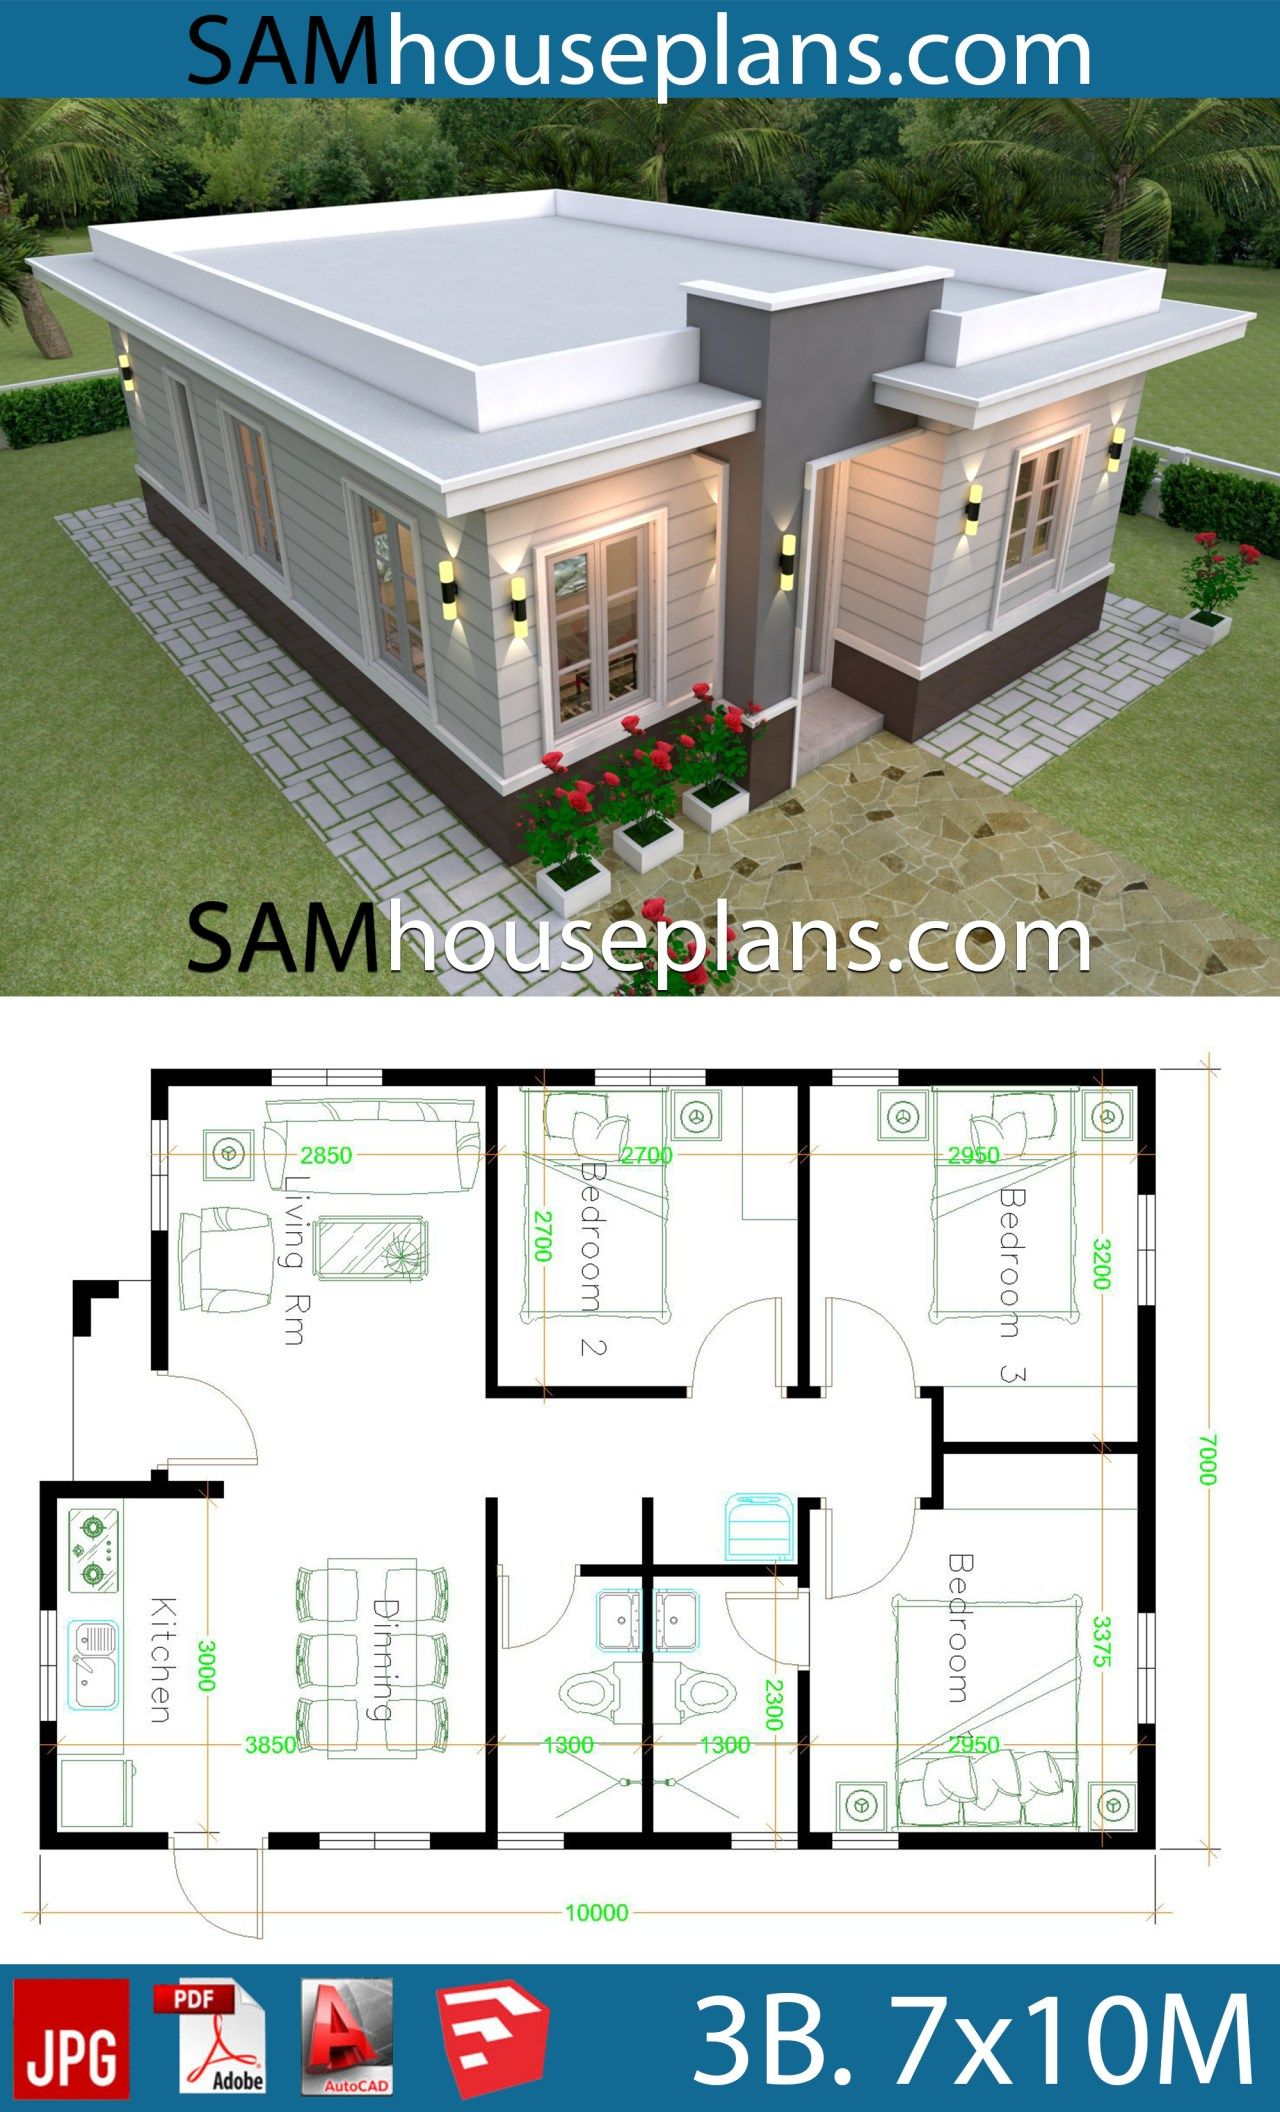 House Plans 7x10 With 3 Bedrooms With Terrace Roof Sam House Plans House Roof Design Modern Bungalow House House Plan Gallery